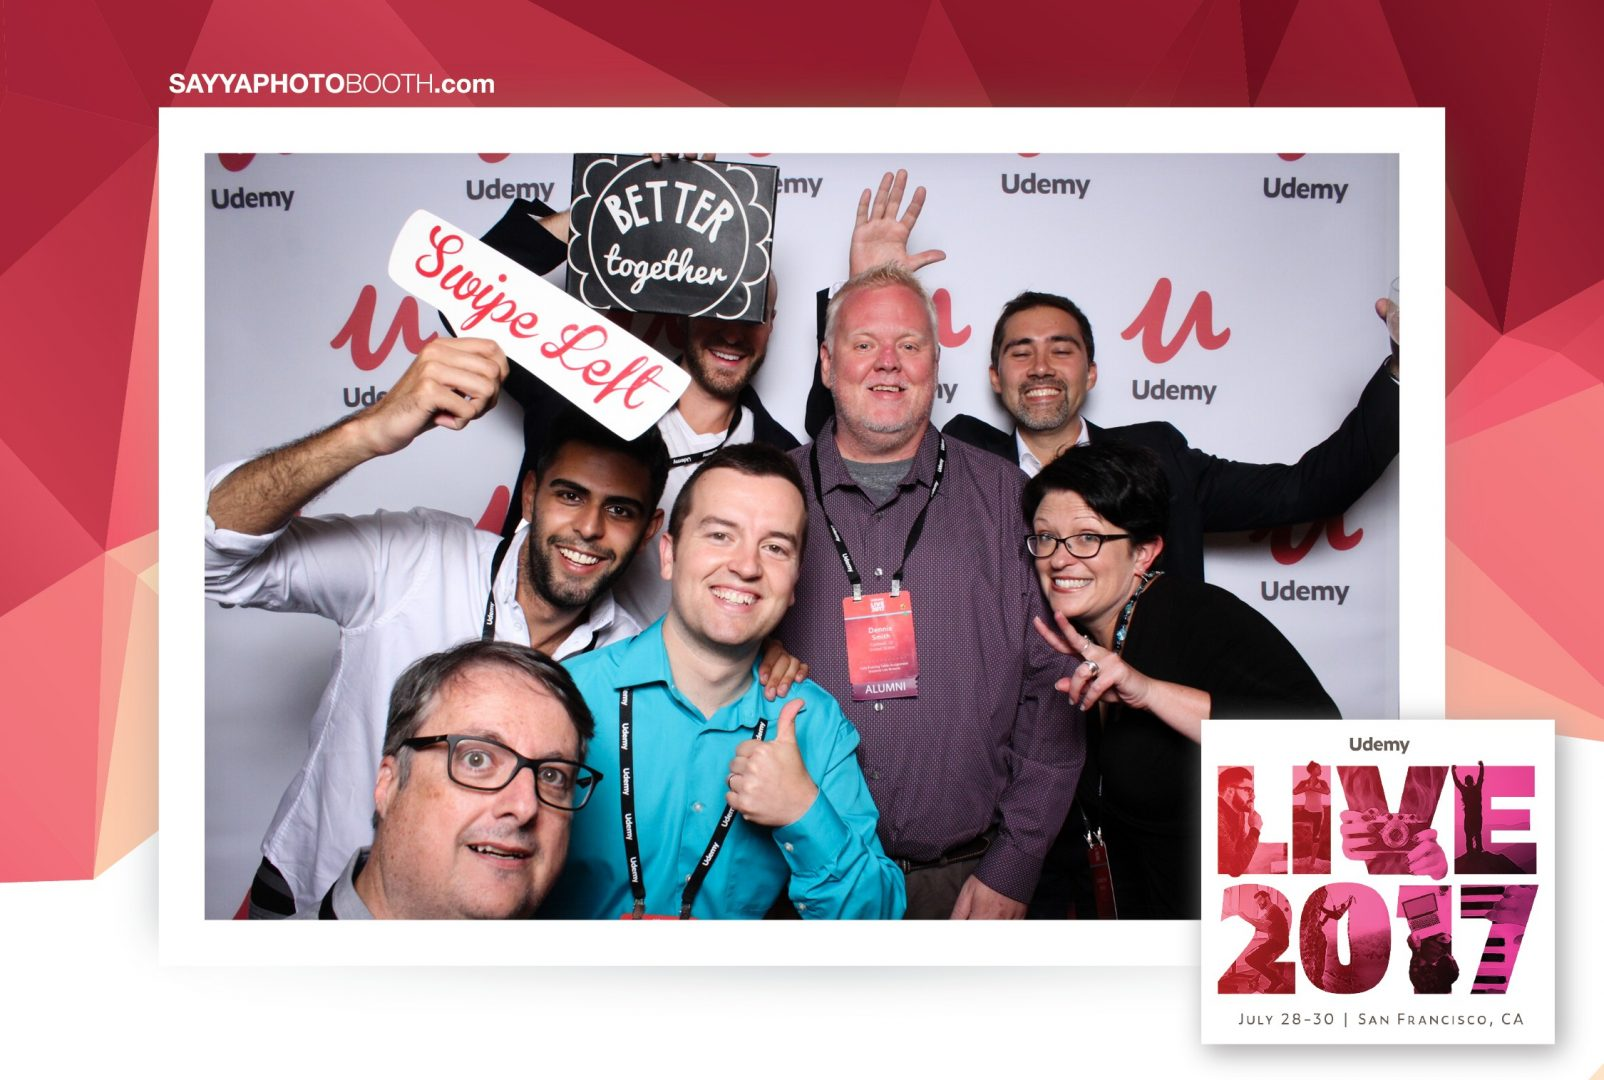 Udemy Live Photo Booth